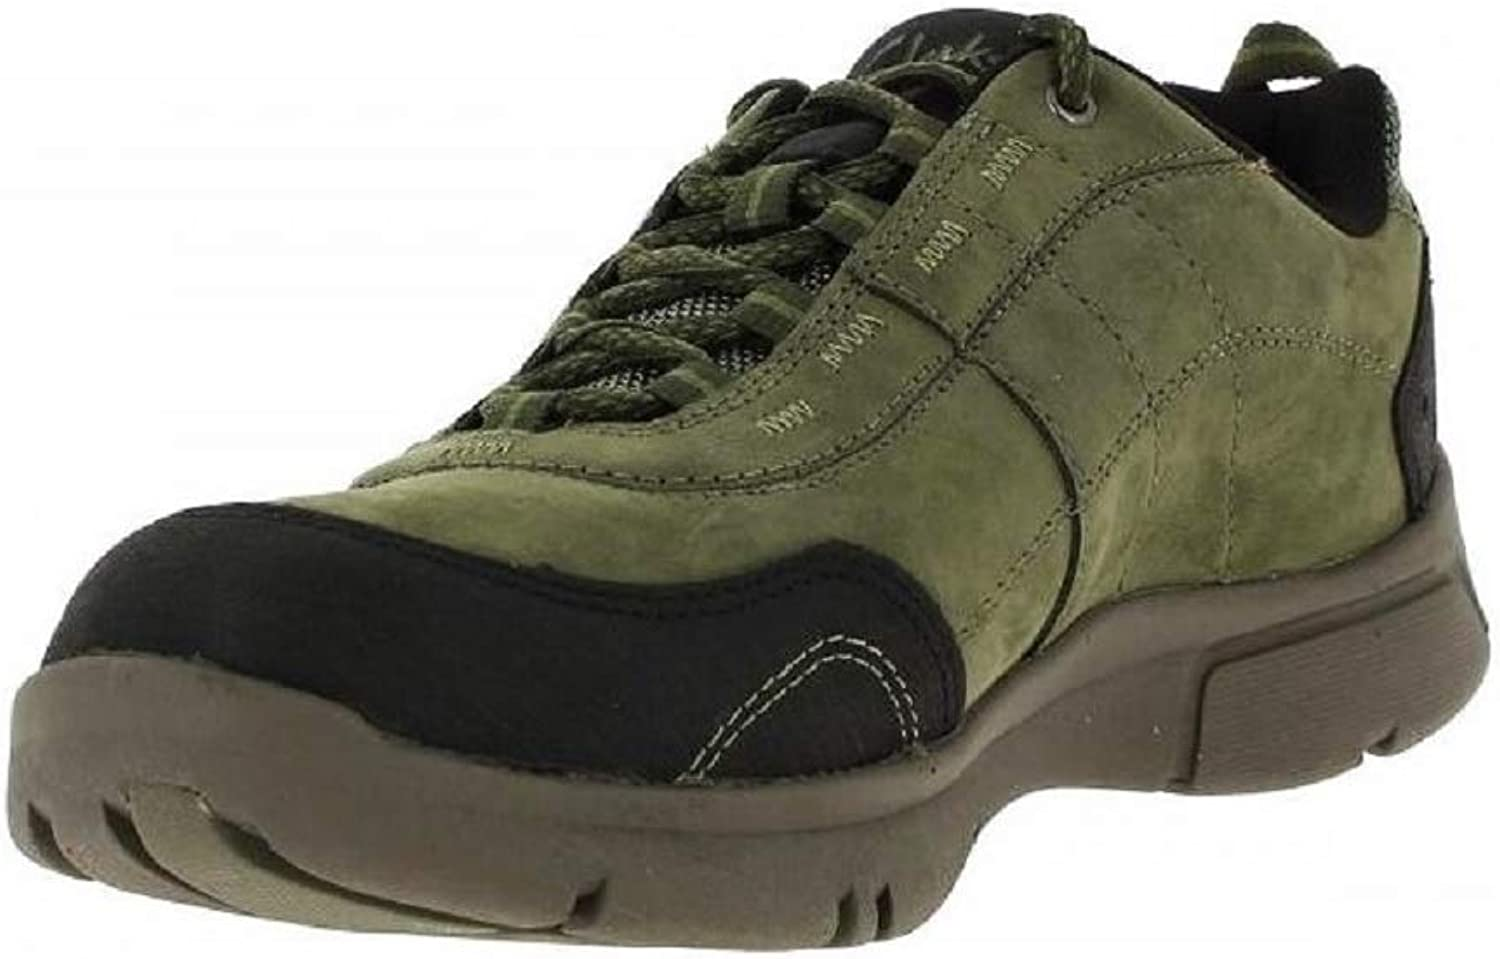 Clarks LUMINATEBAY GTX Waterproof Wave Walk shoes Men UK-8 G EU-42 M